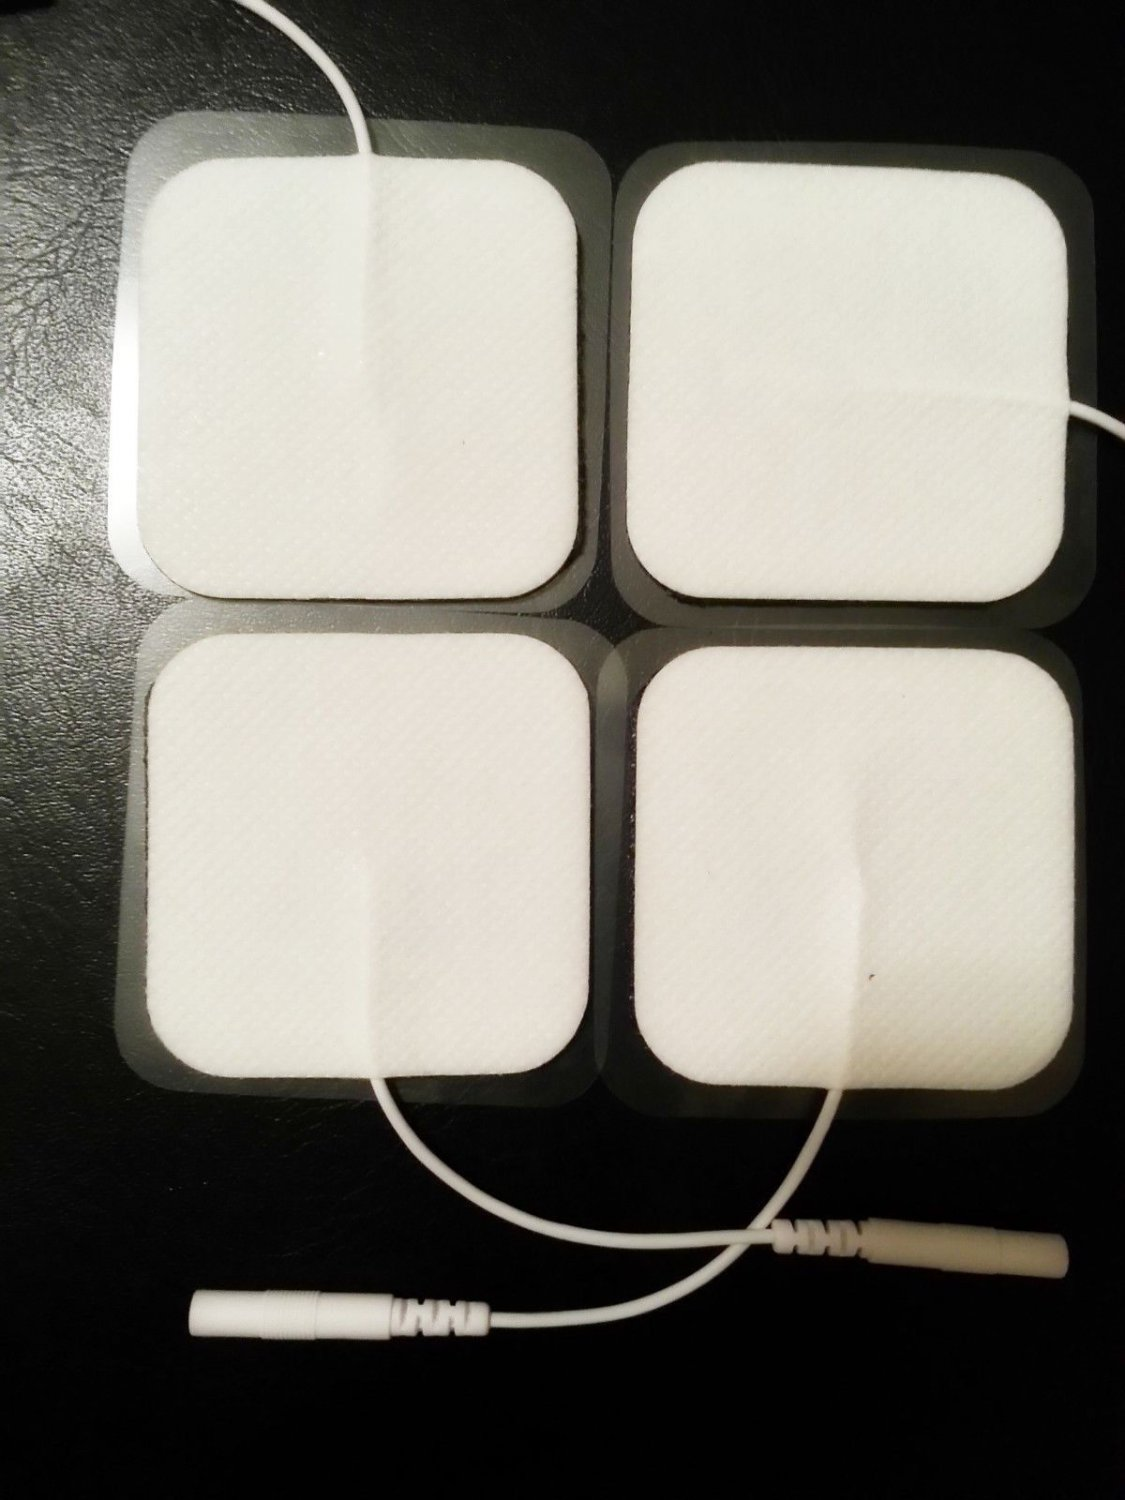 16 pc Square TENS Machine, Digital Massager Replacement Electrode Pads 5X5cm